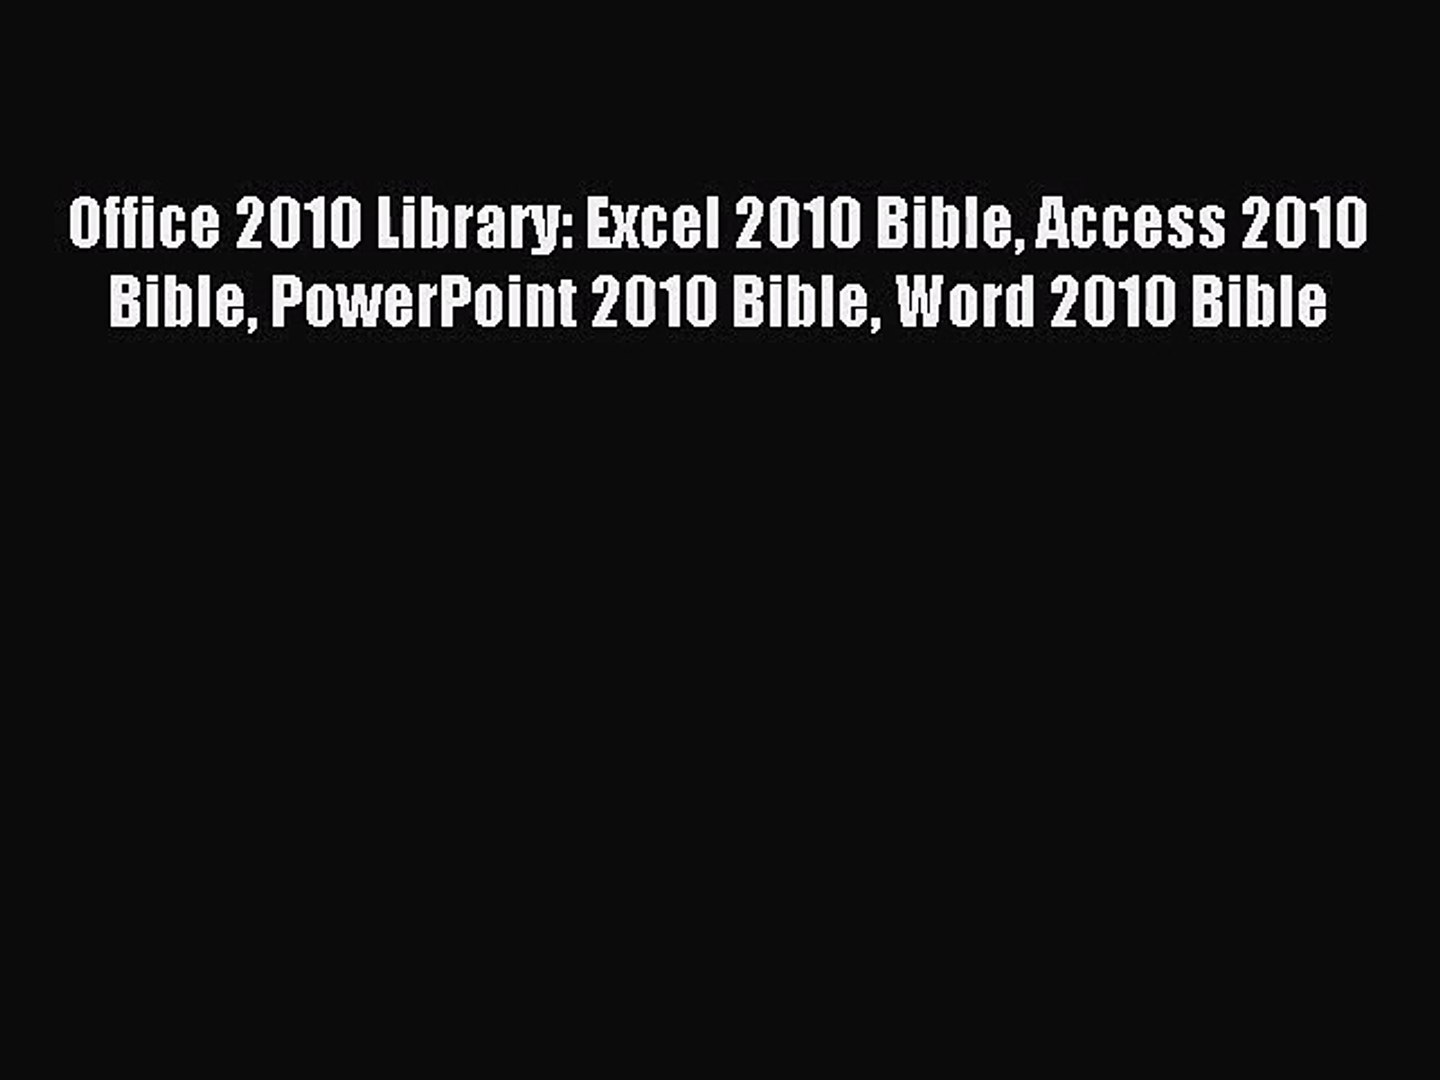 [PDF Download] Office 2010 Library: Excel 2010 Bible Access 2010 Bible PowerPoint 2010 Bible